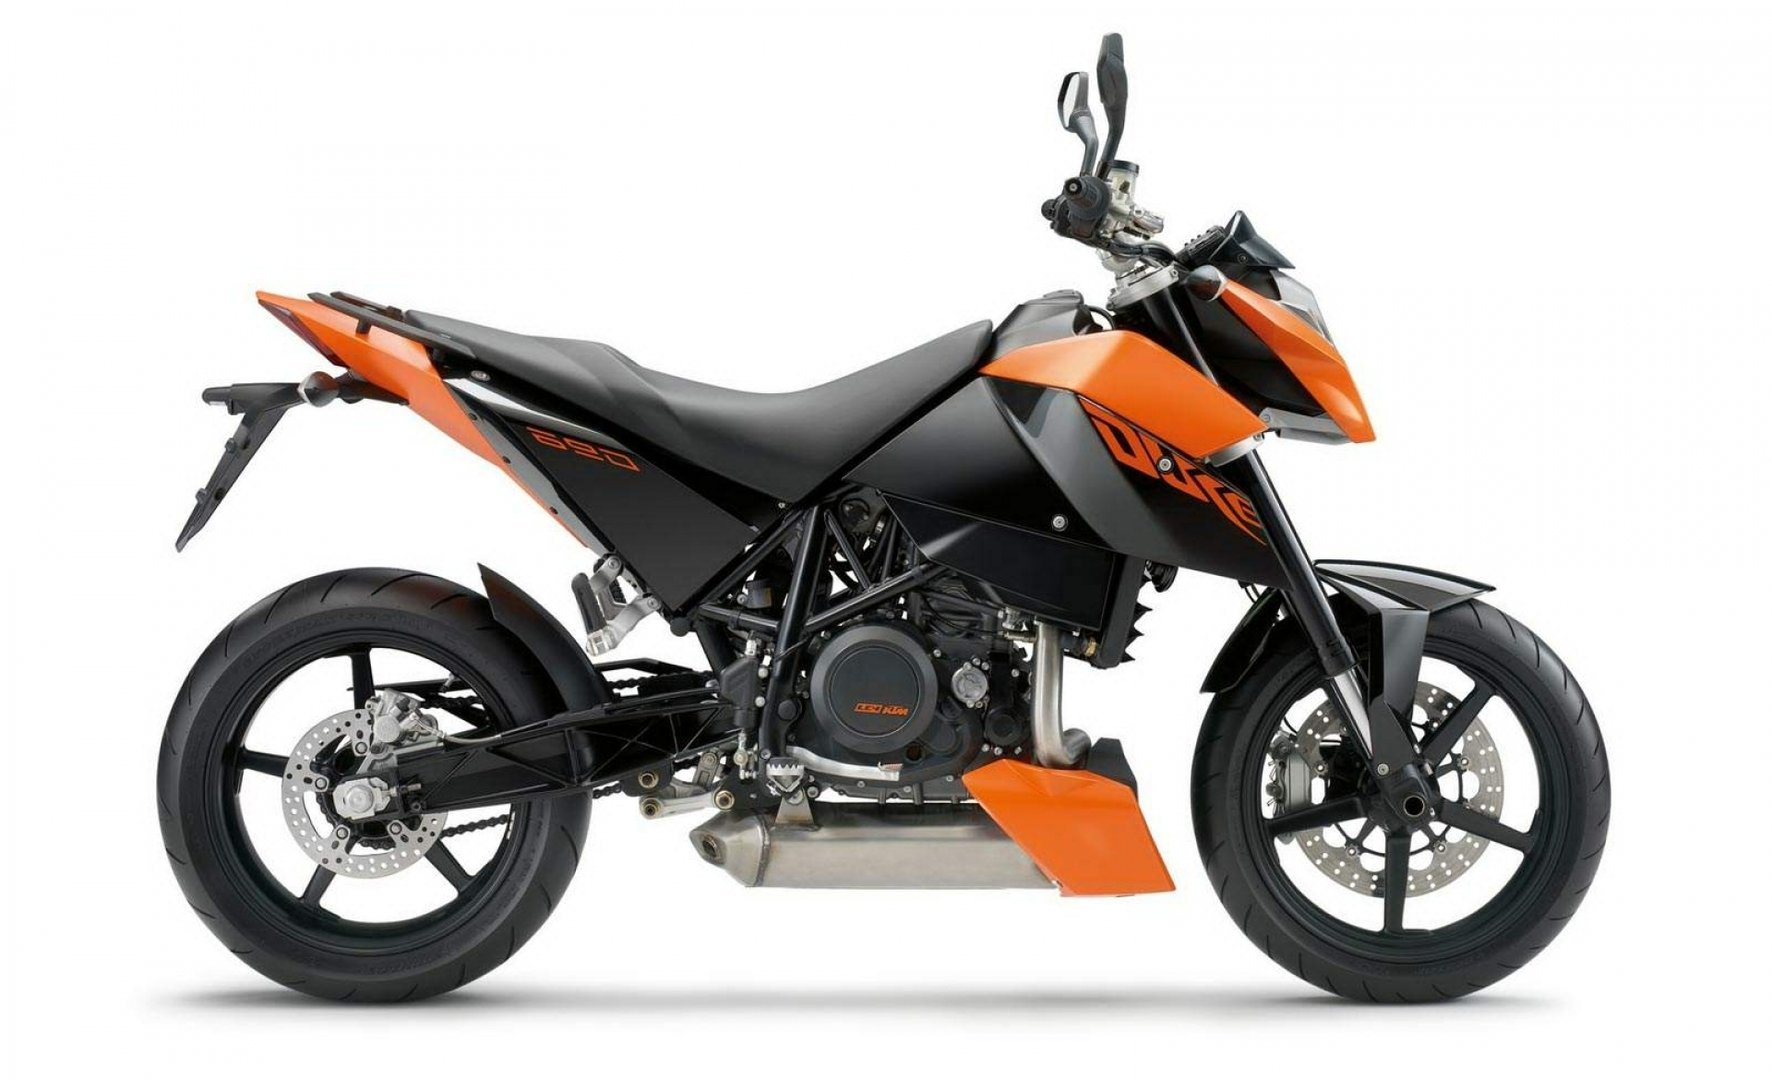 ktm 690 duke 35kw carnet a2 kits de limitaci n a 35kw. Black Bedroom Furniture Sets. Home Design Ideas